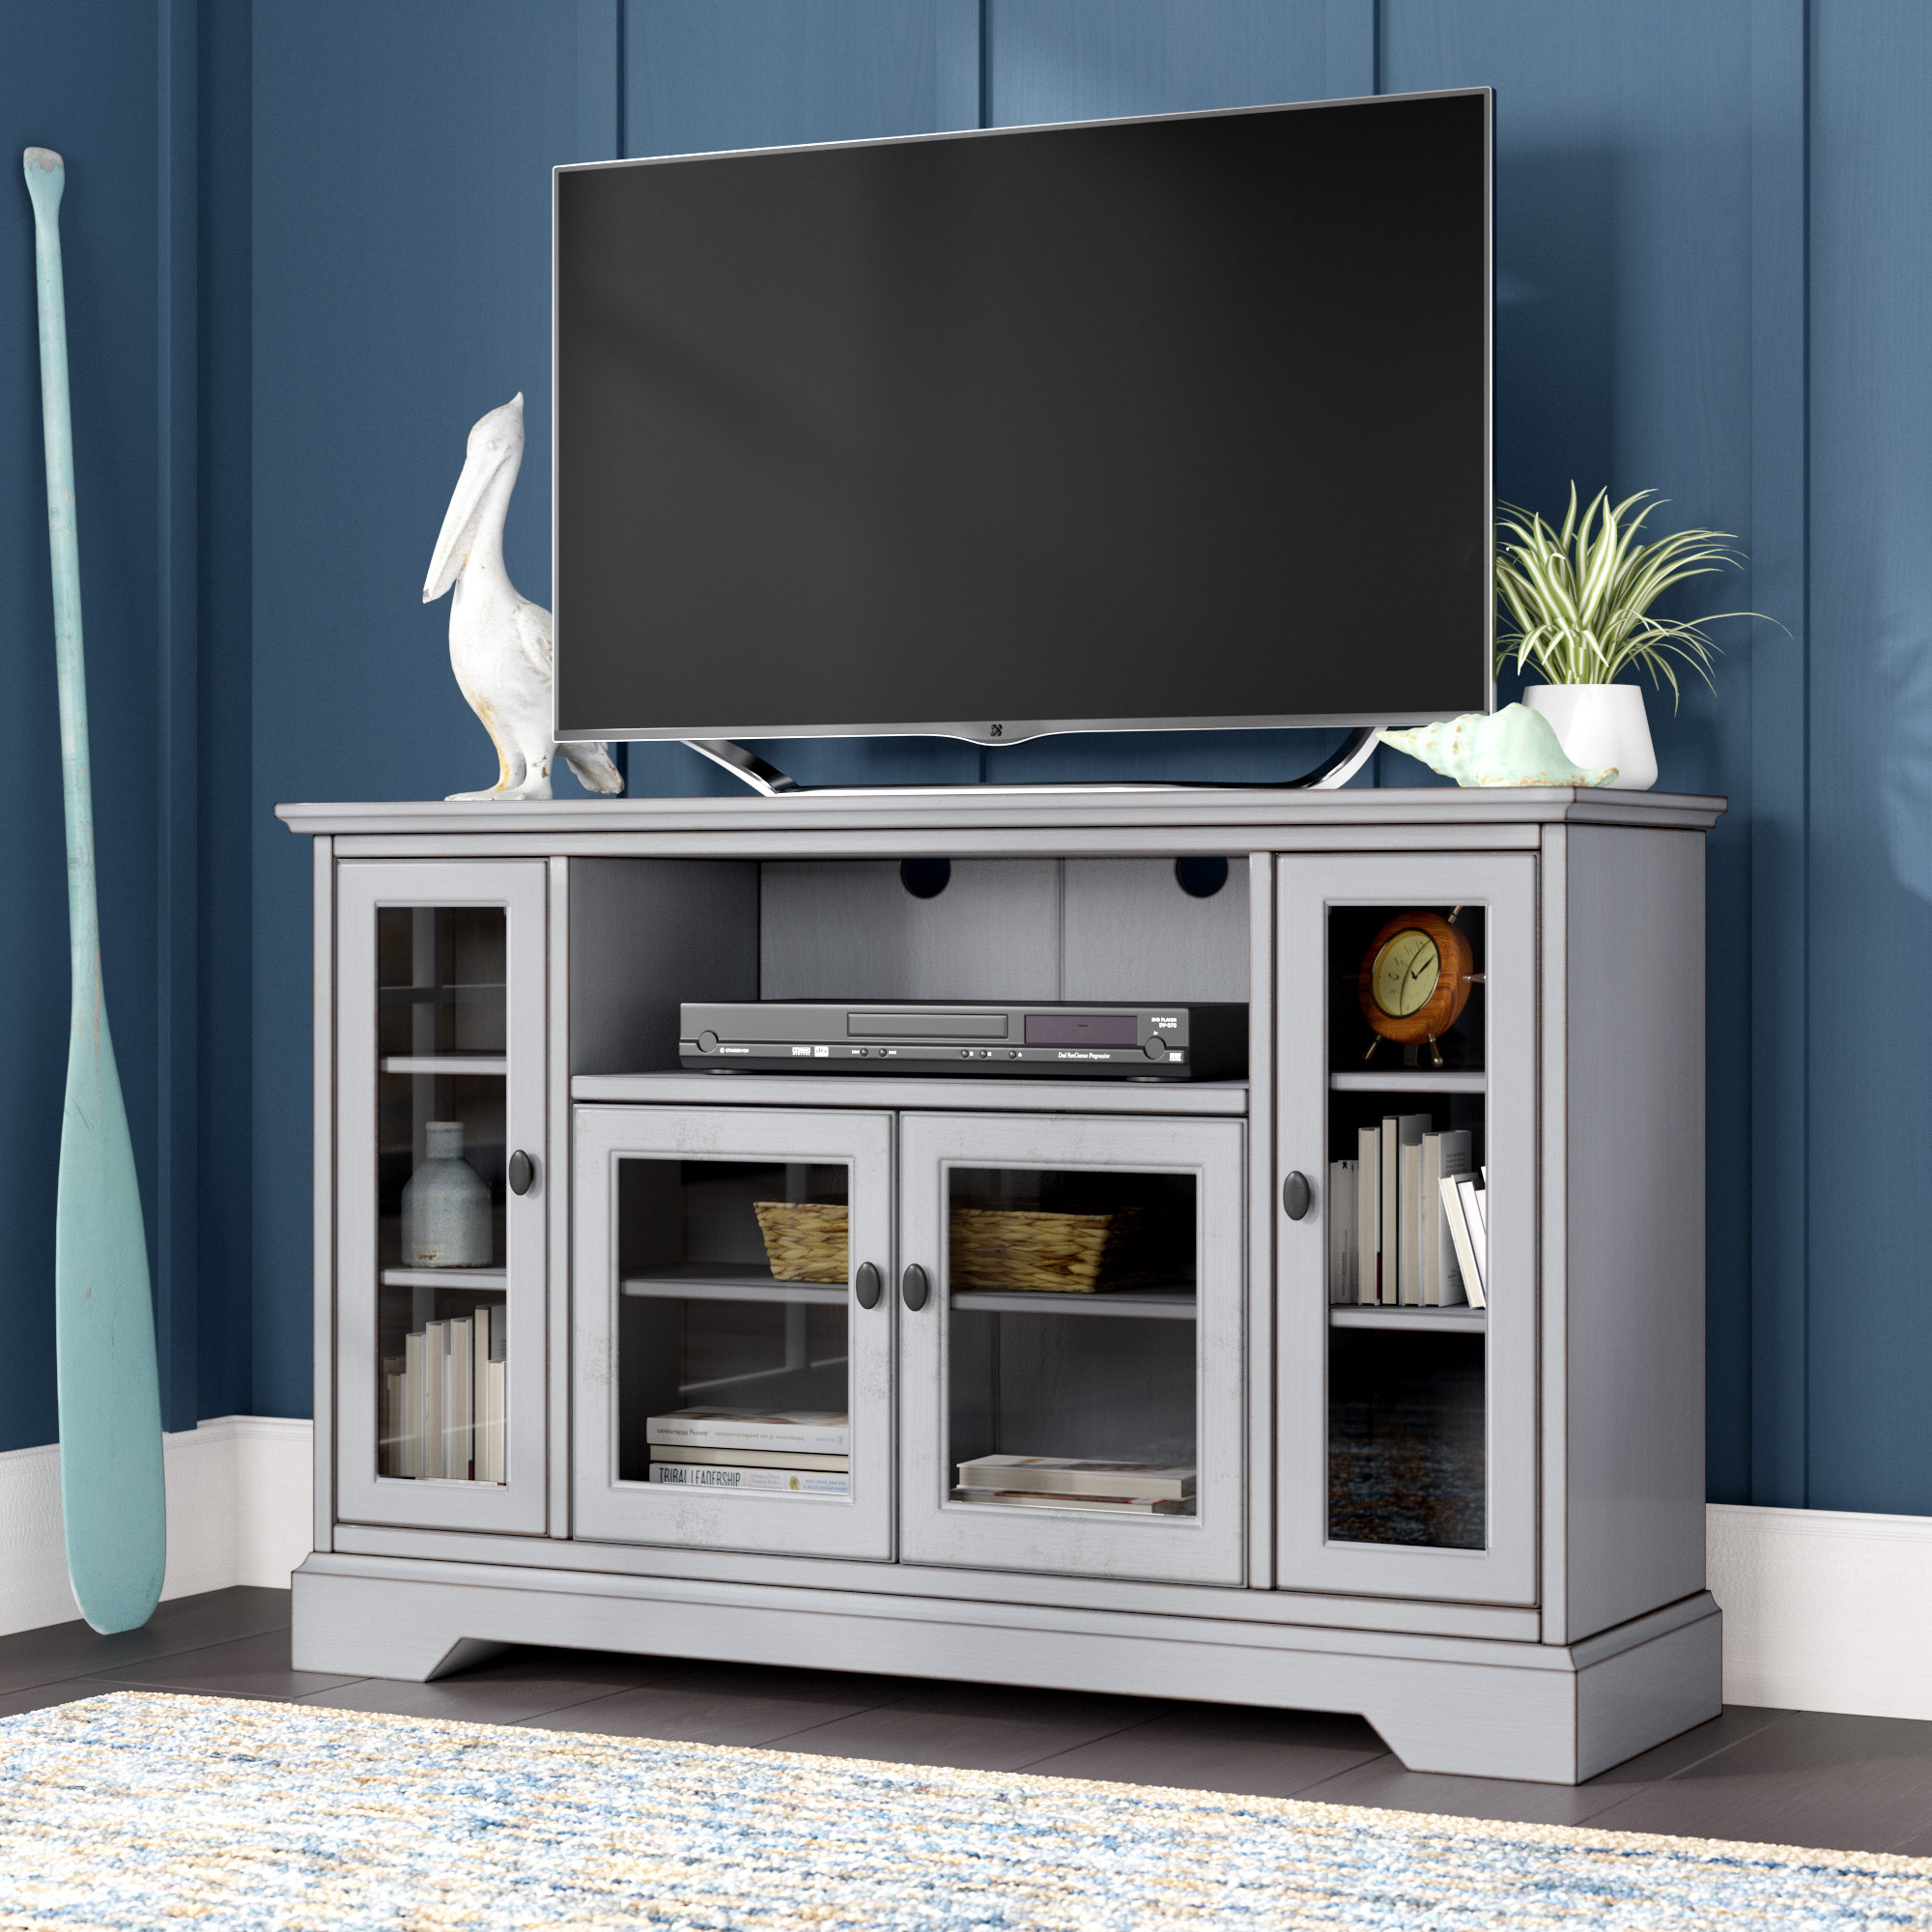 Tv Stands & Entertainment Centers You'll Love | Wayfair With Regard To Sinclair Blue 64 Inch Tv Stands (View 28 of 30)